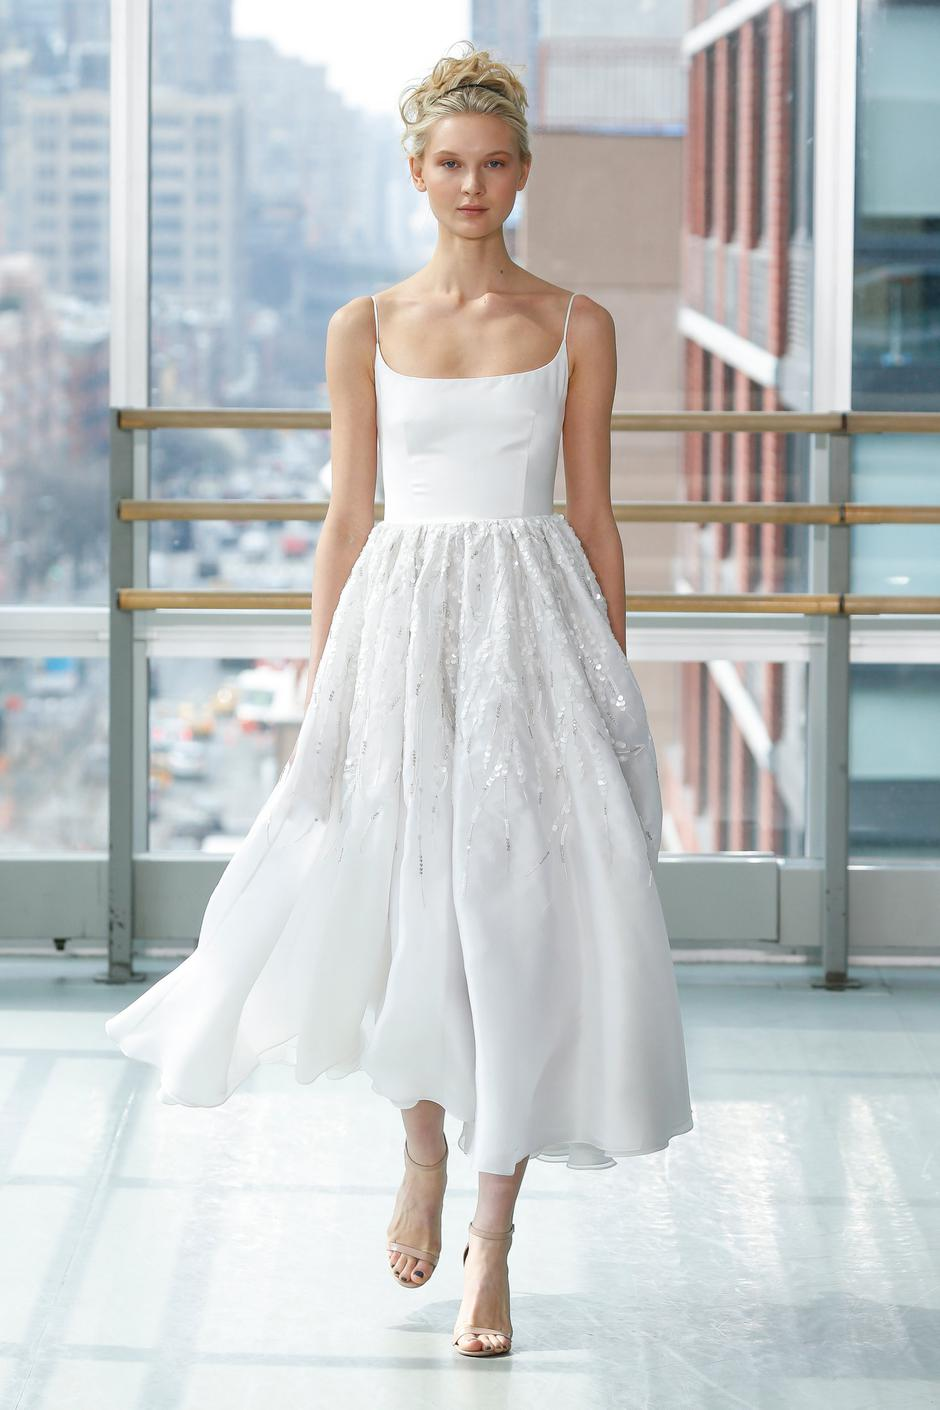 Fantastic Vows Wedding Dresses New York Component - Wedding Plan ...